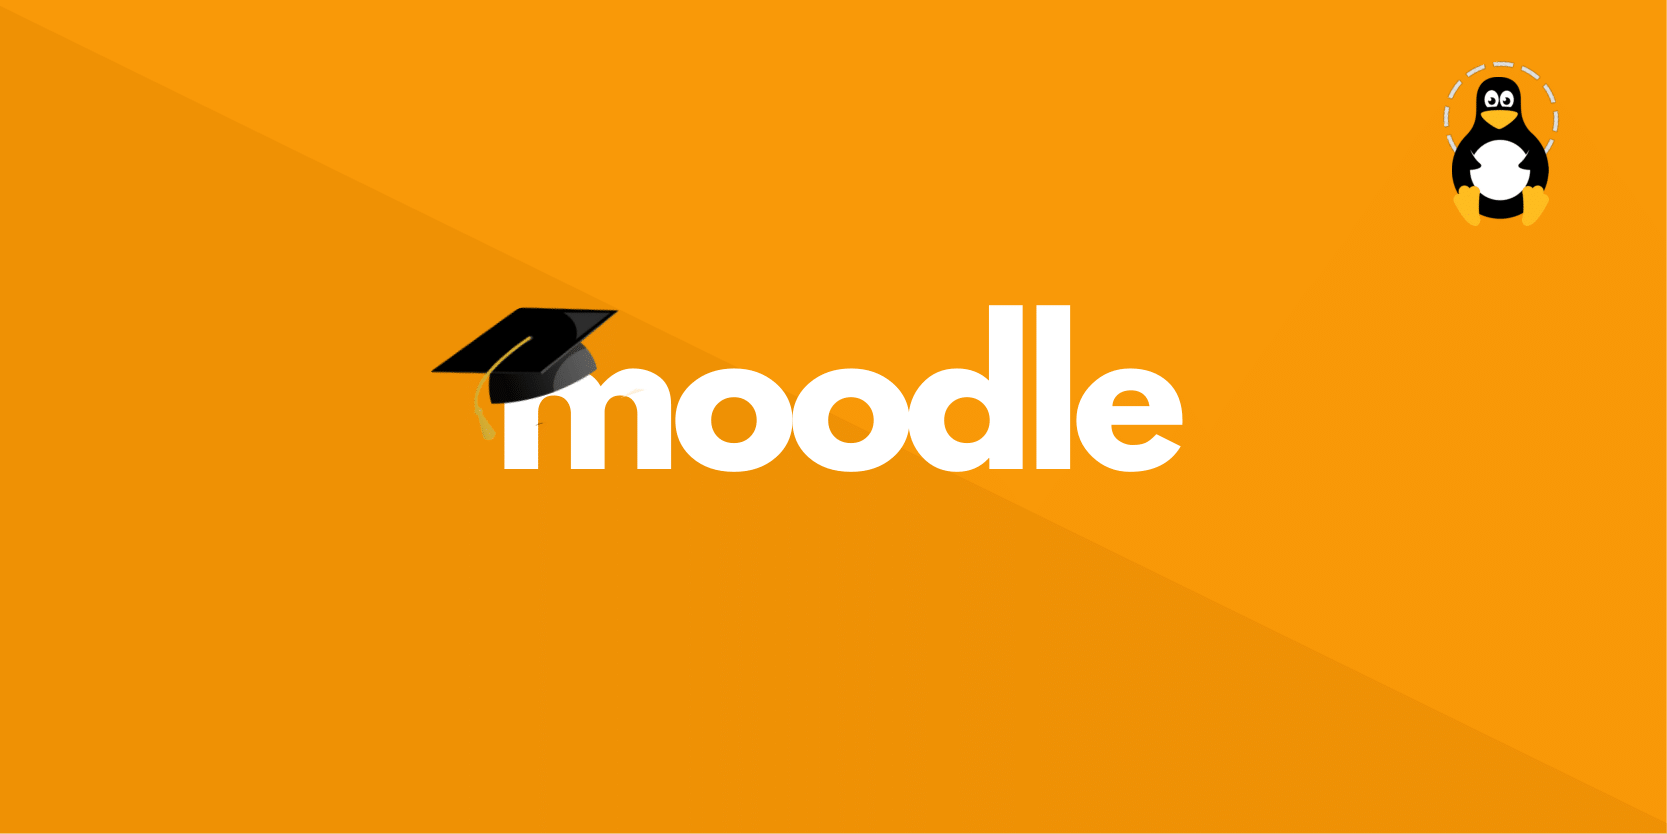 How to Install Moodle Learning Platform in Ubuntu 20.04